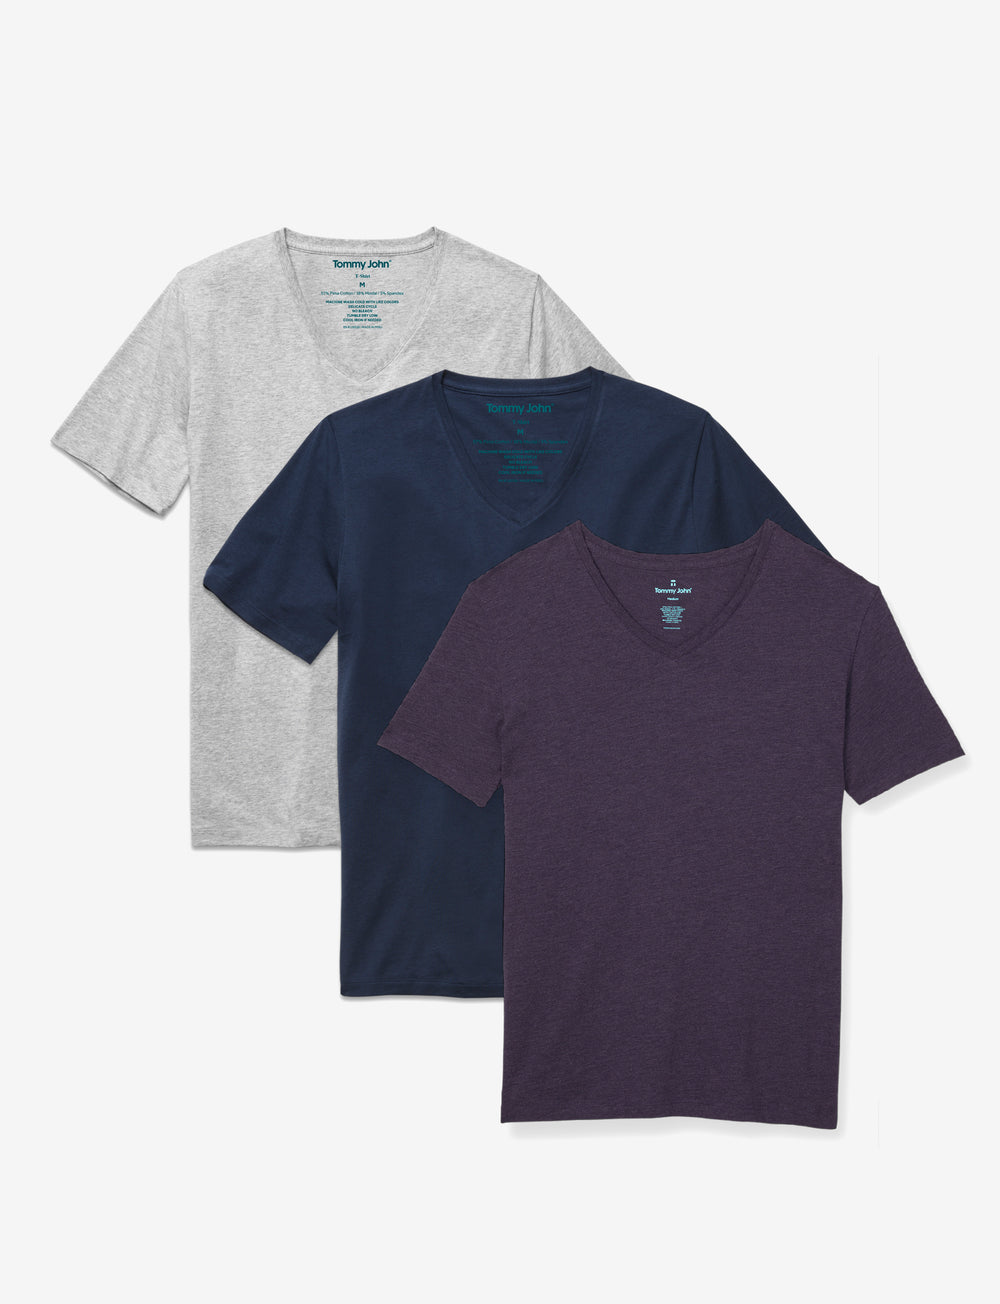 Second Skin V-Neck Tee Fashion Pack Details Image